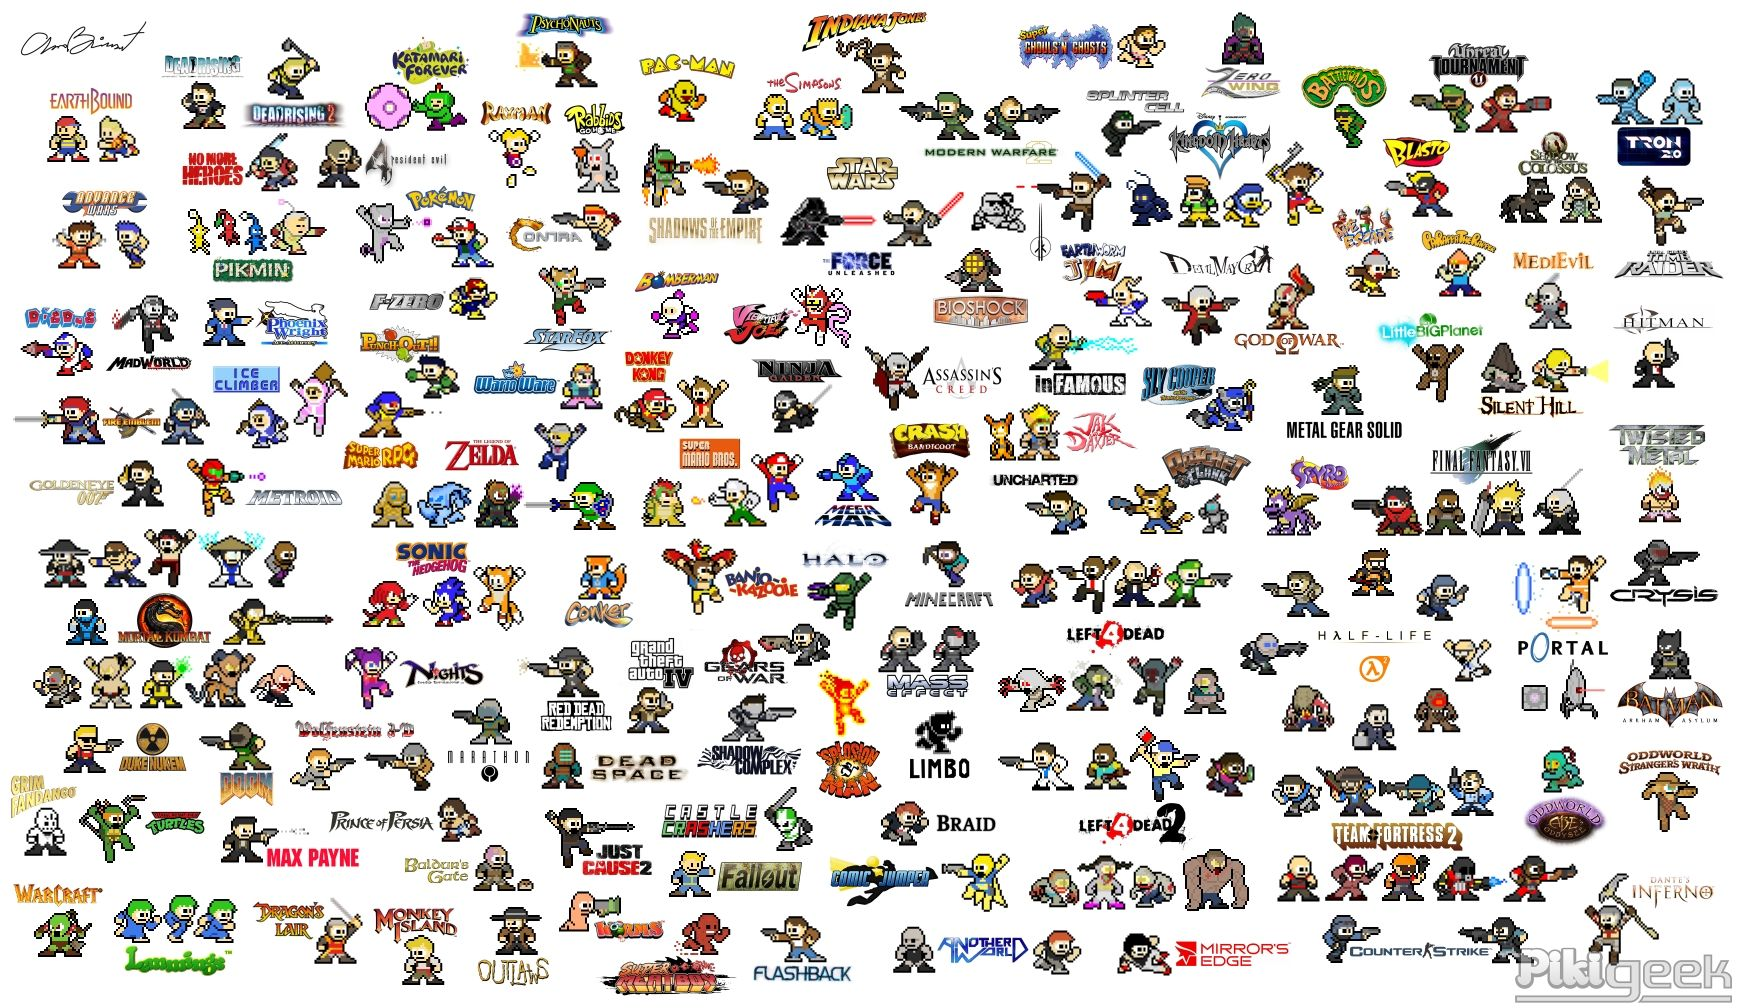 Wallpaper Of Old Video Games All Done In Style Of Mega Man Classic